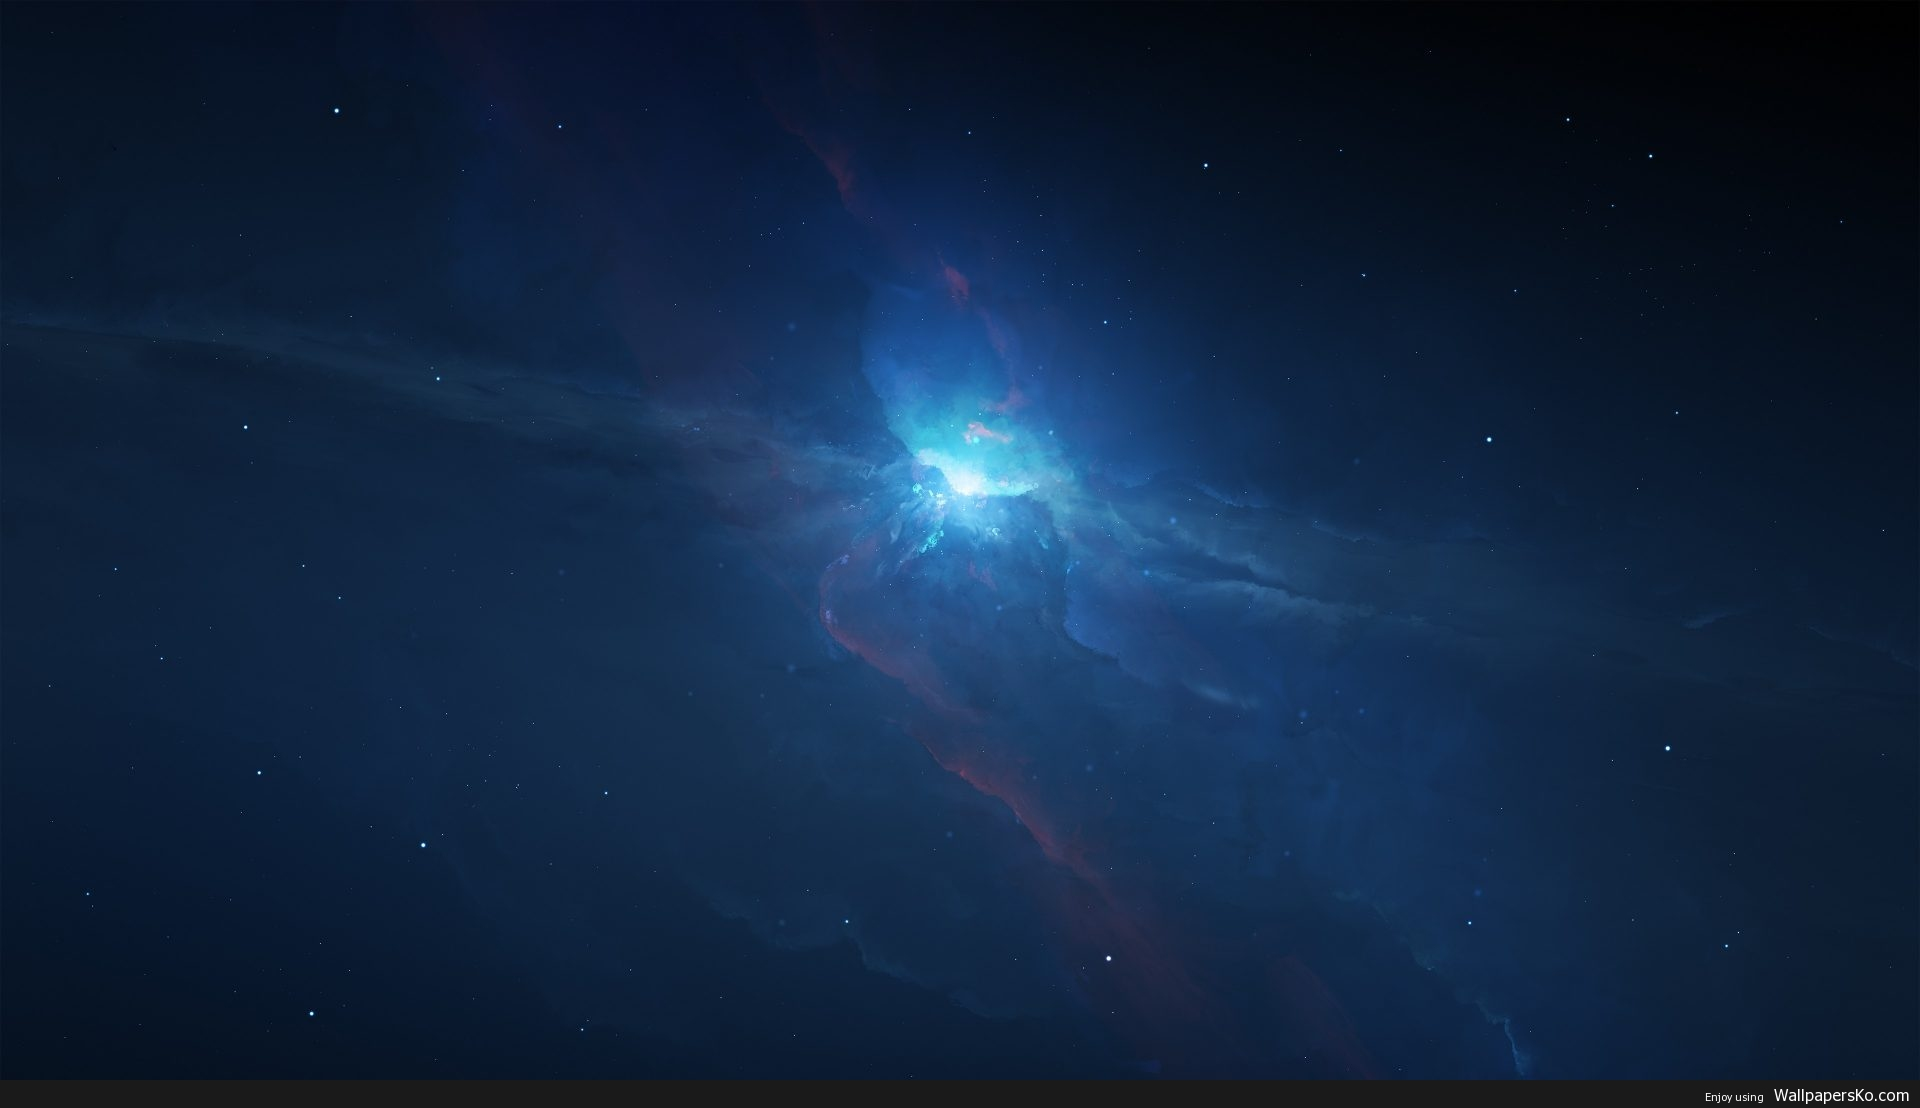 Wallpaper 4k Space